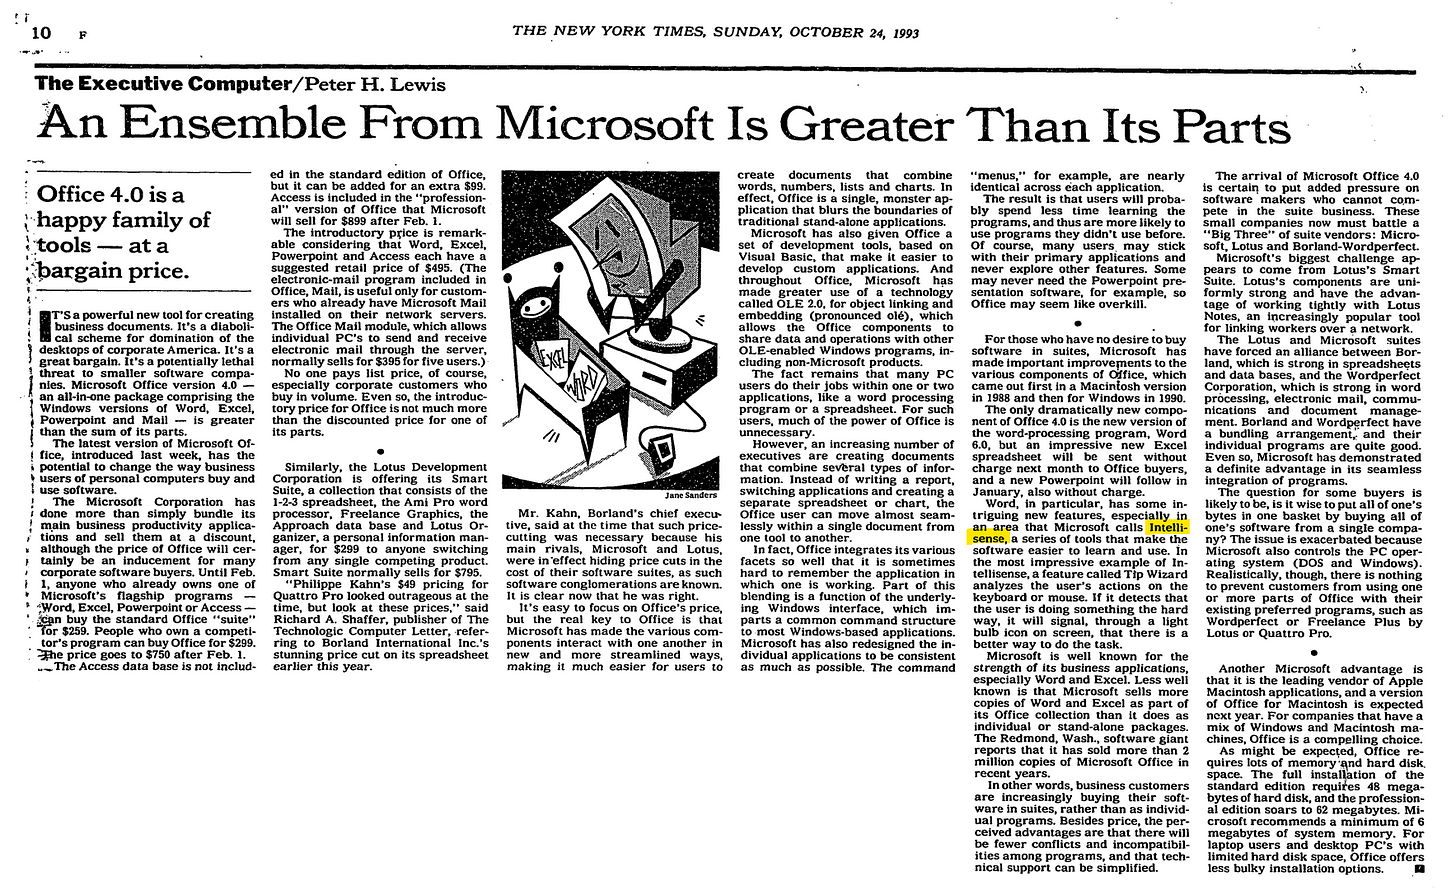 "NY Times October 1993 ""An Ensemble from Microsoft Is Greater Than Its Parts"" - a review of sorts on Office 4.0 that mentions IntelliSense."